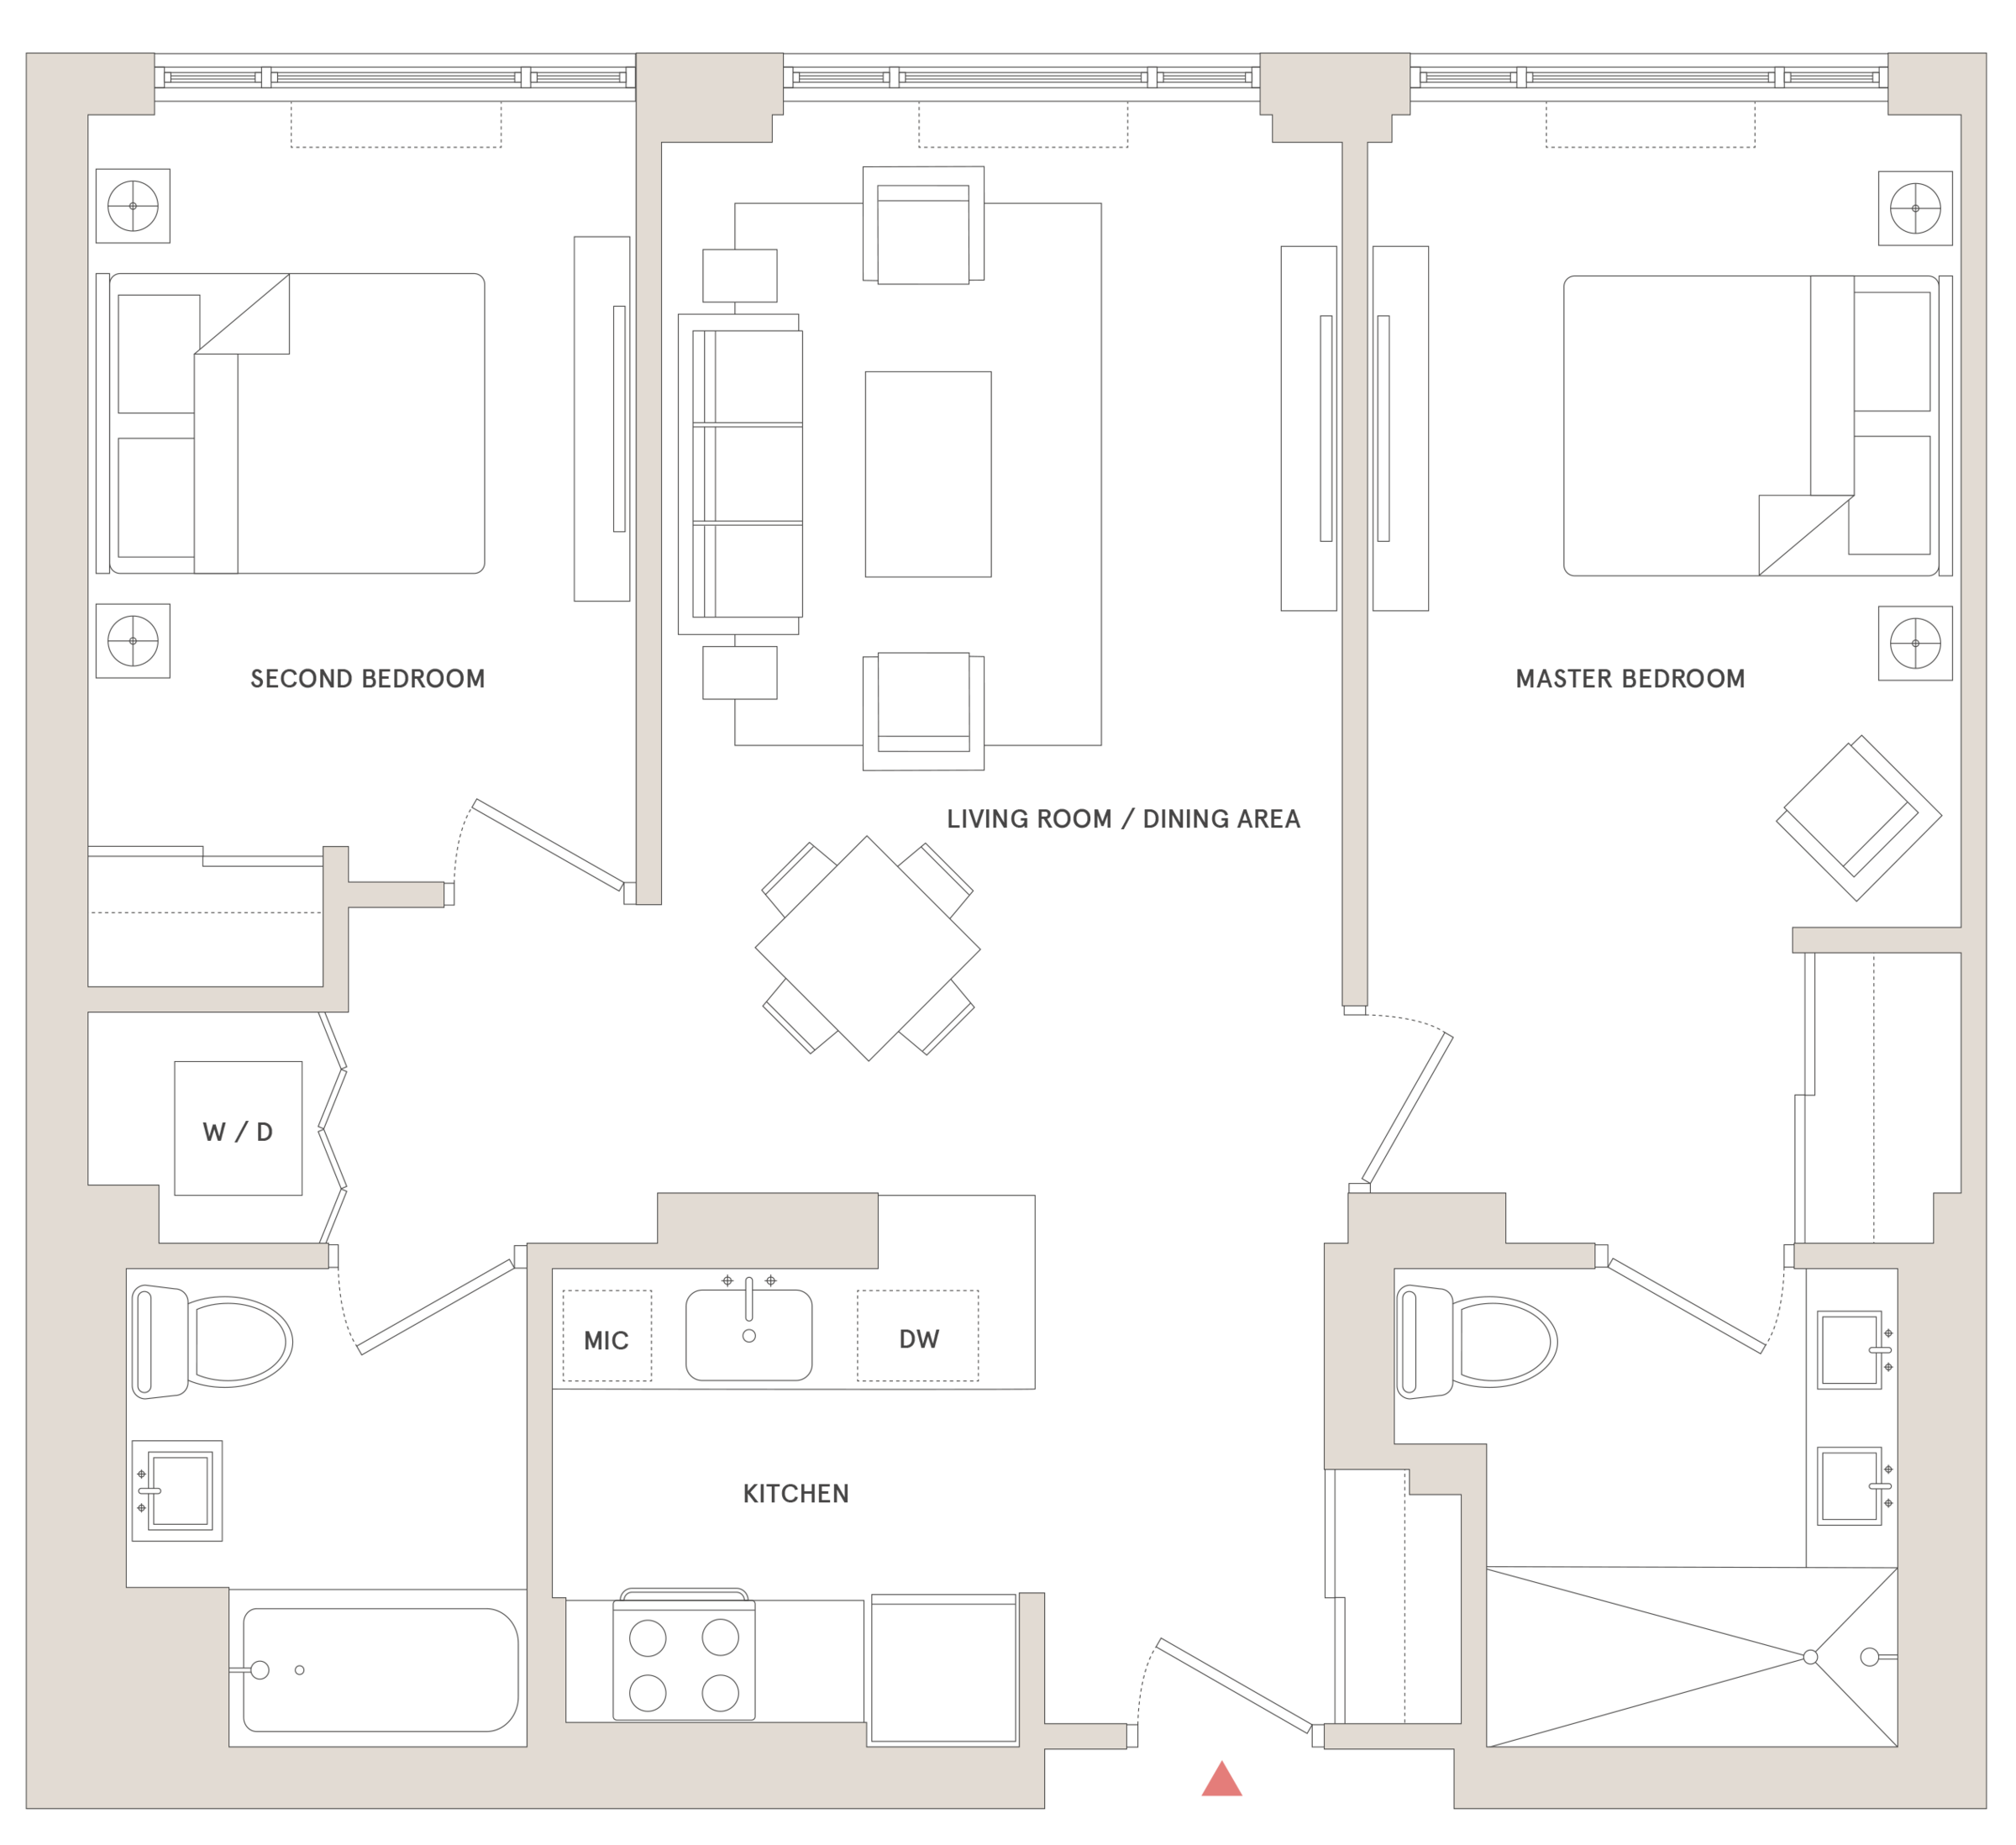 Full screen 181fs floorplans 170922 6b 5 6k 7 8h